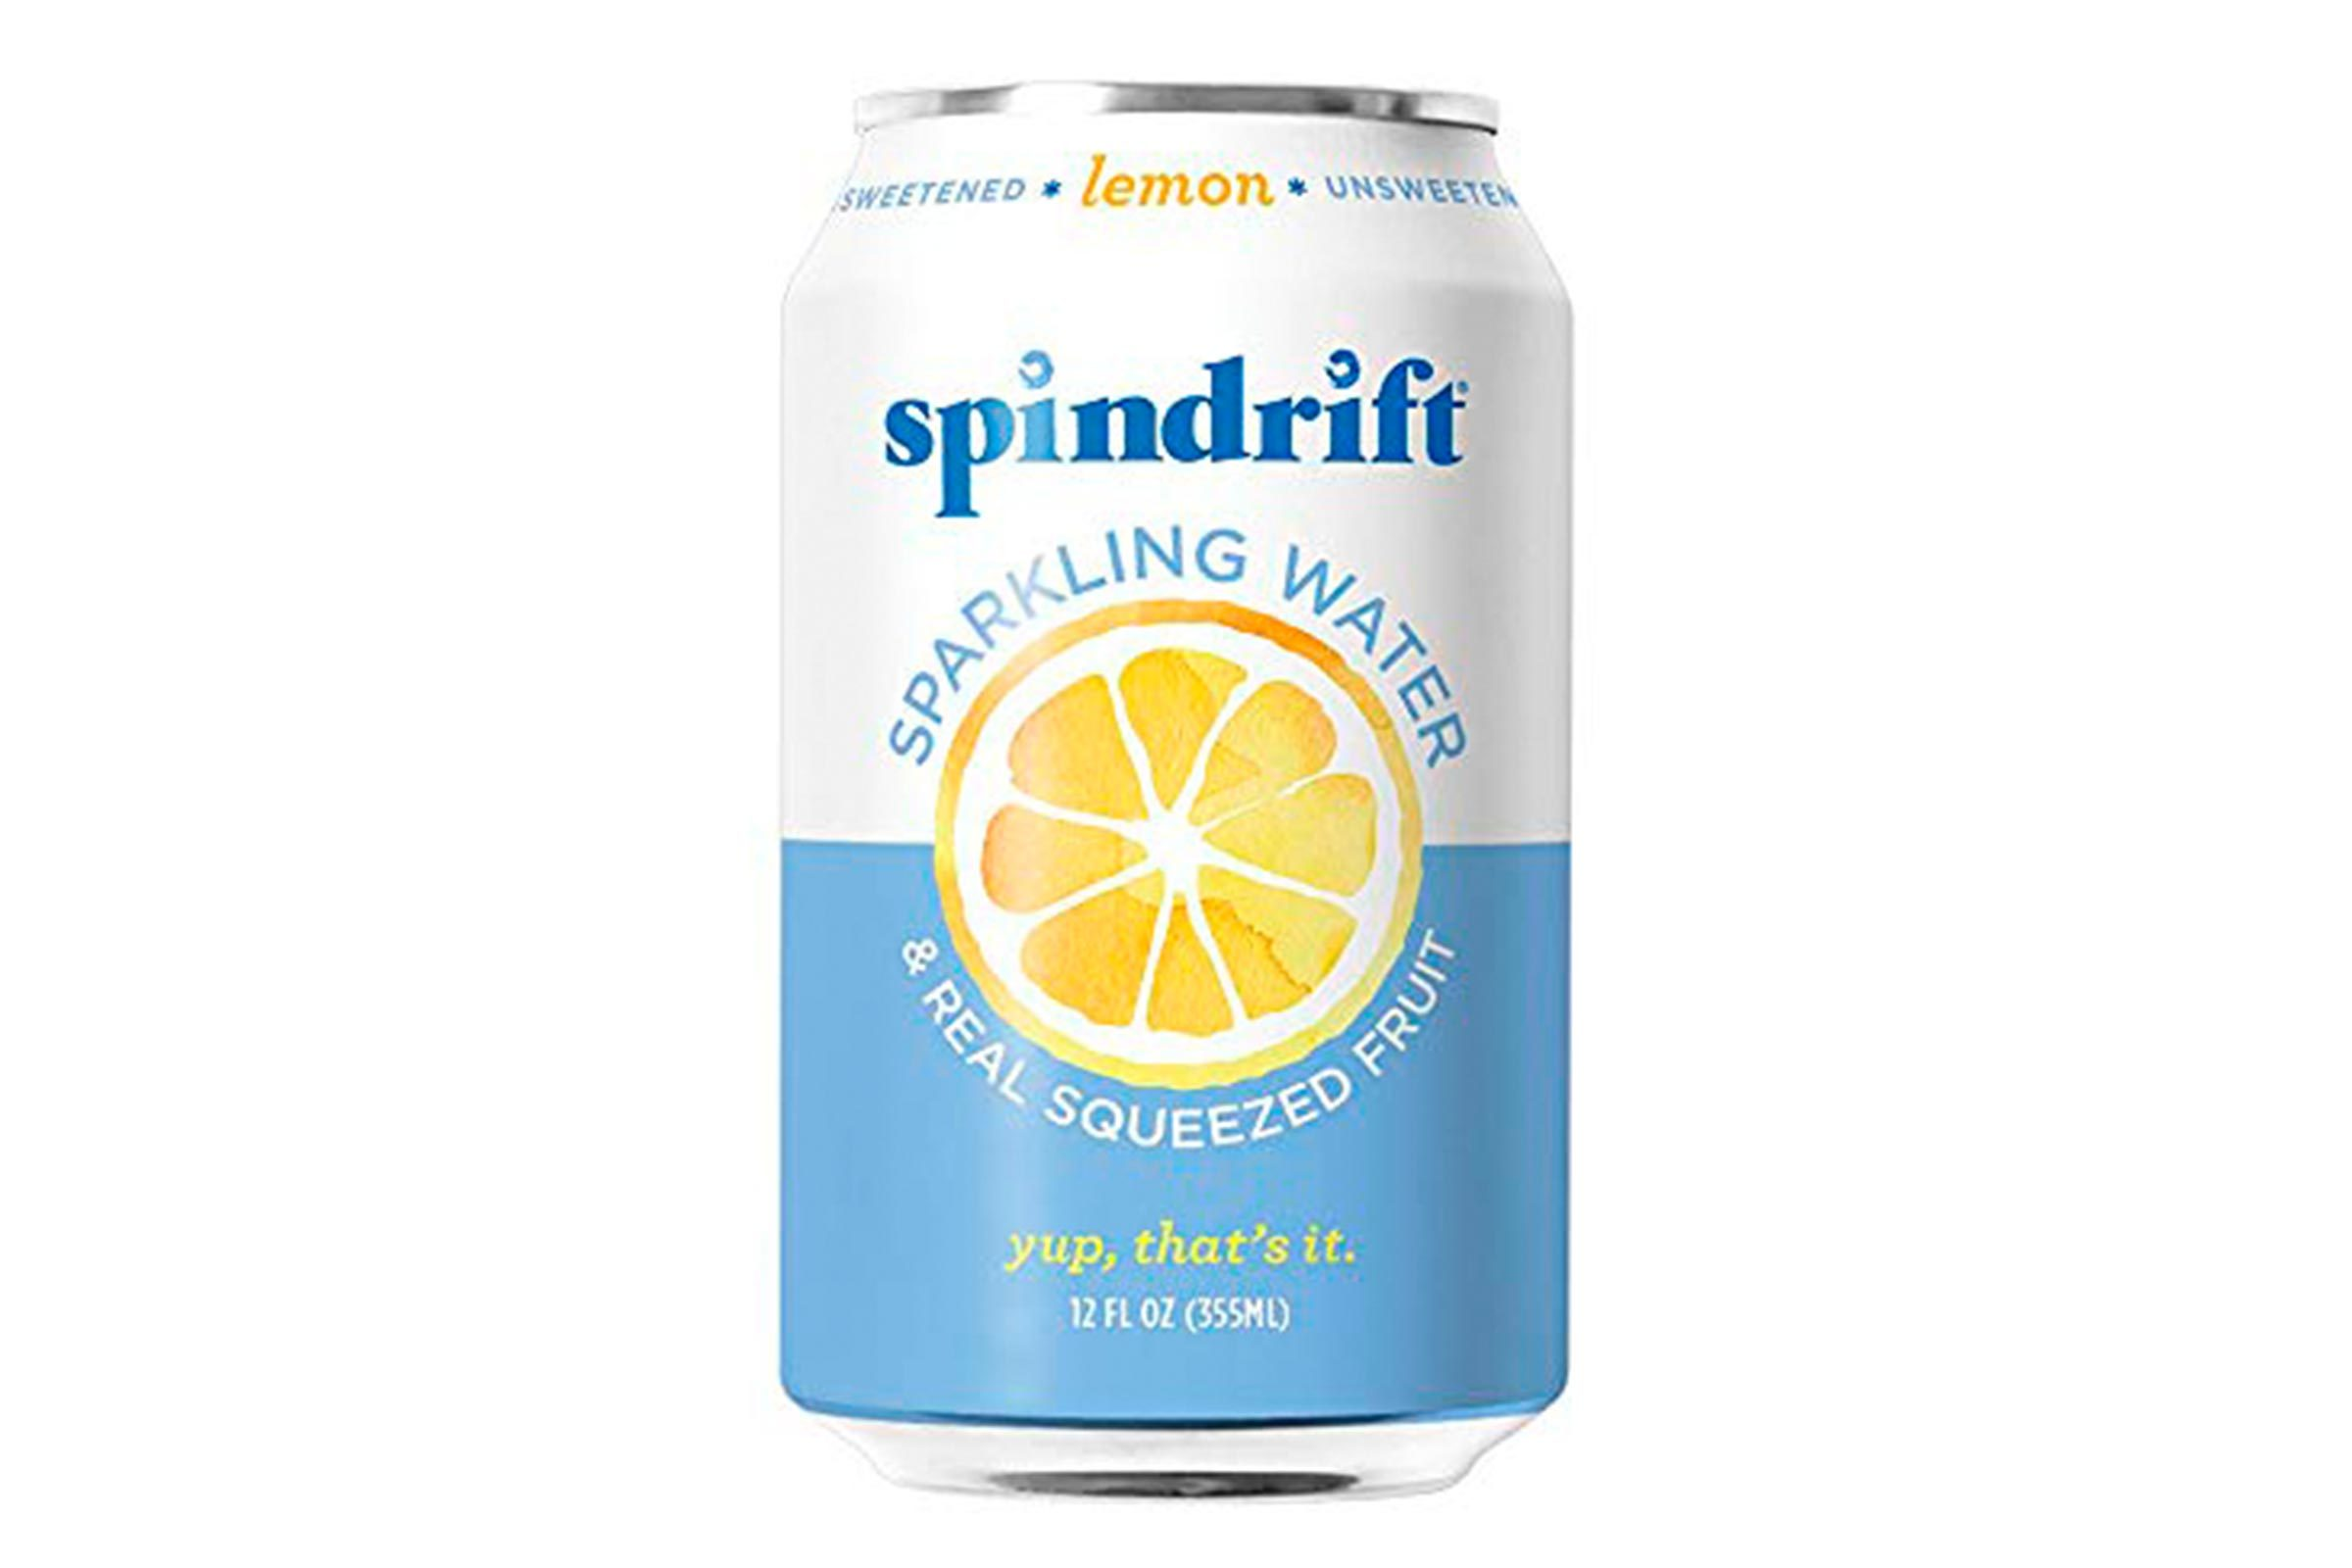 Spindrift sparking water